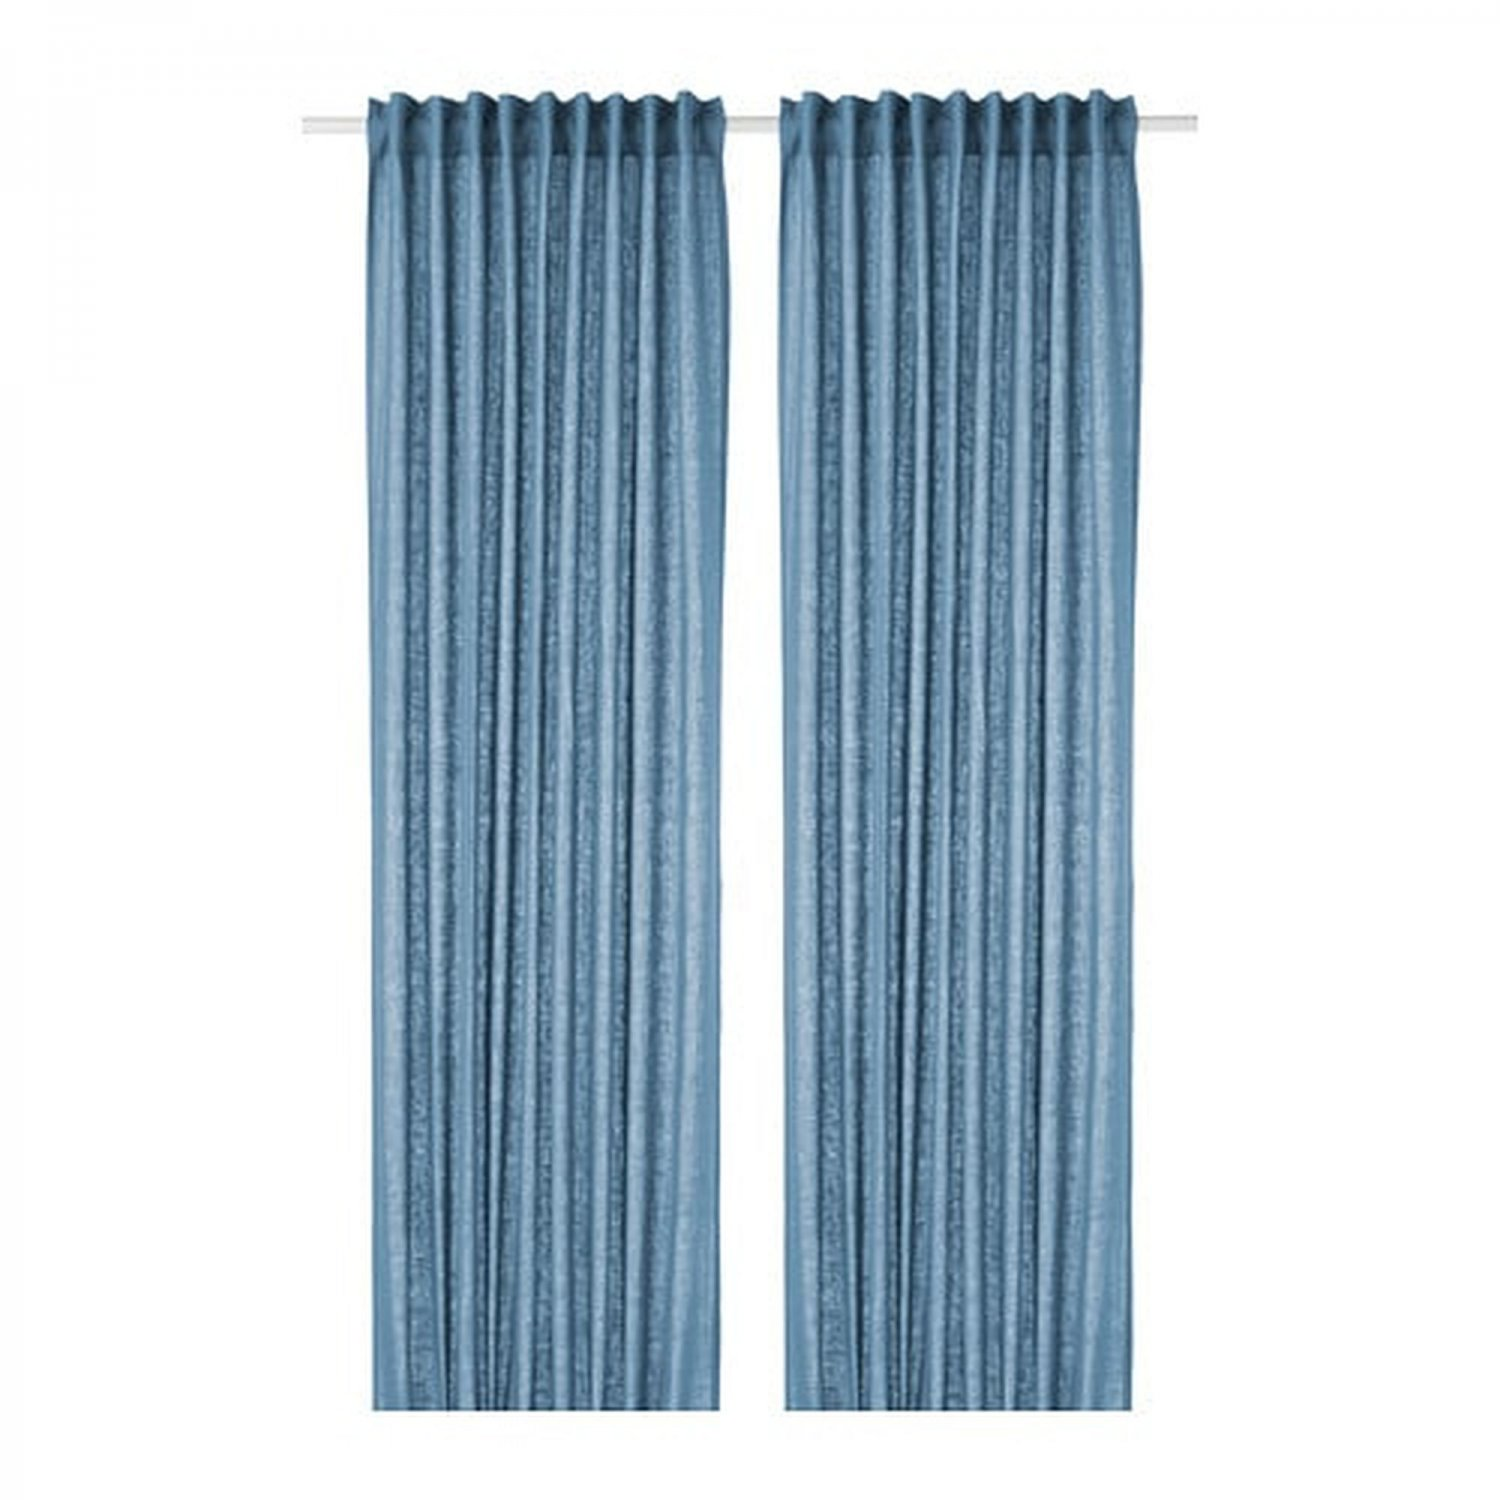 Ikea Aina Curtains Drapes Blue Linen 98 Long